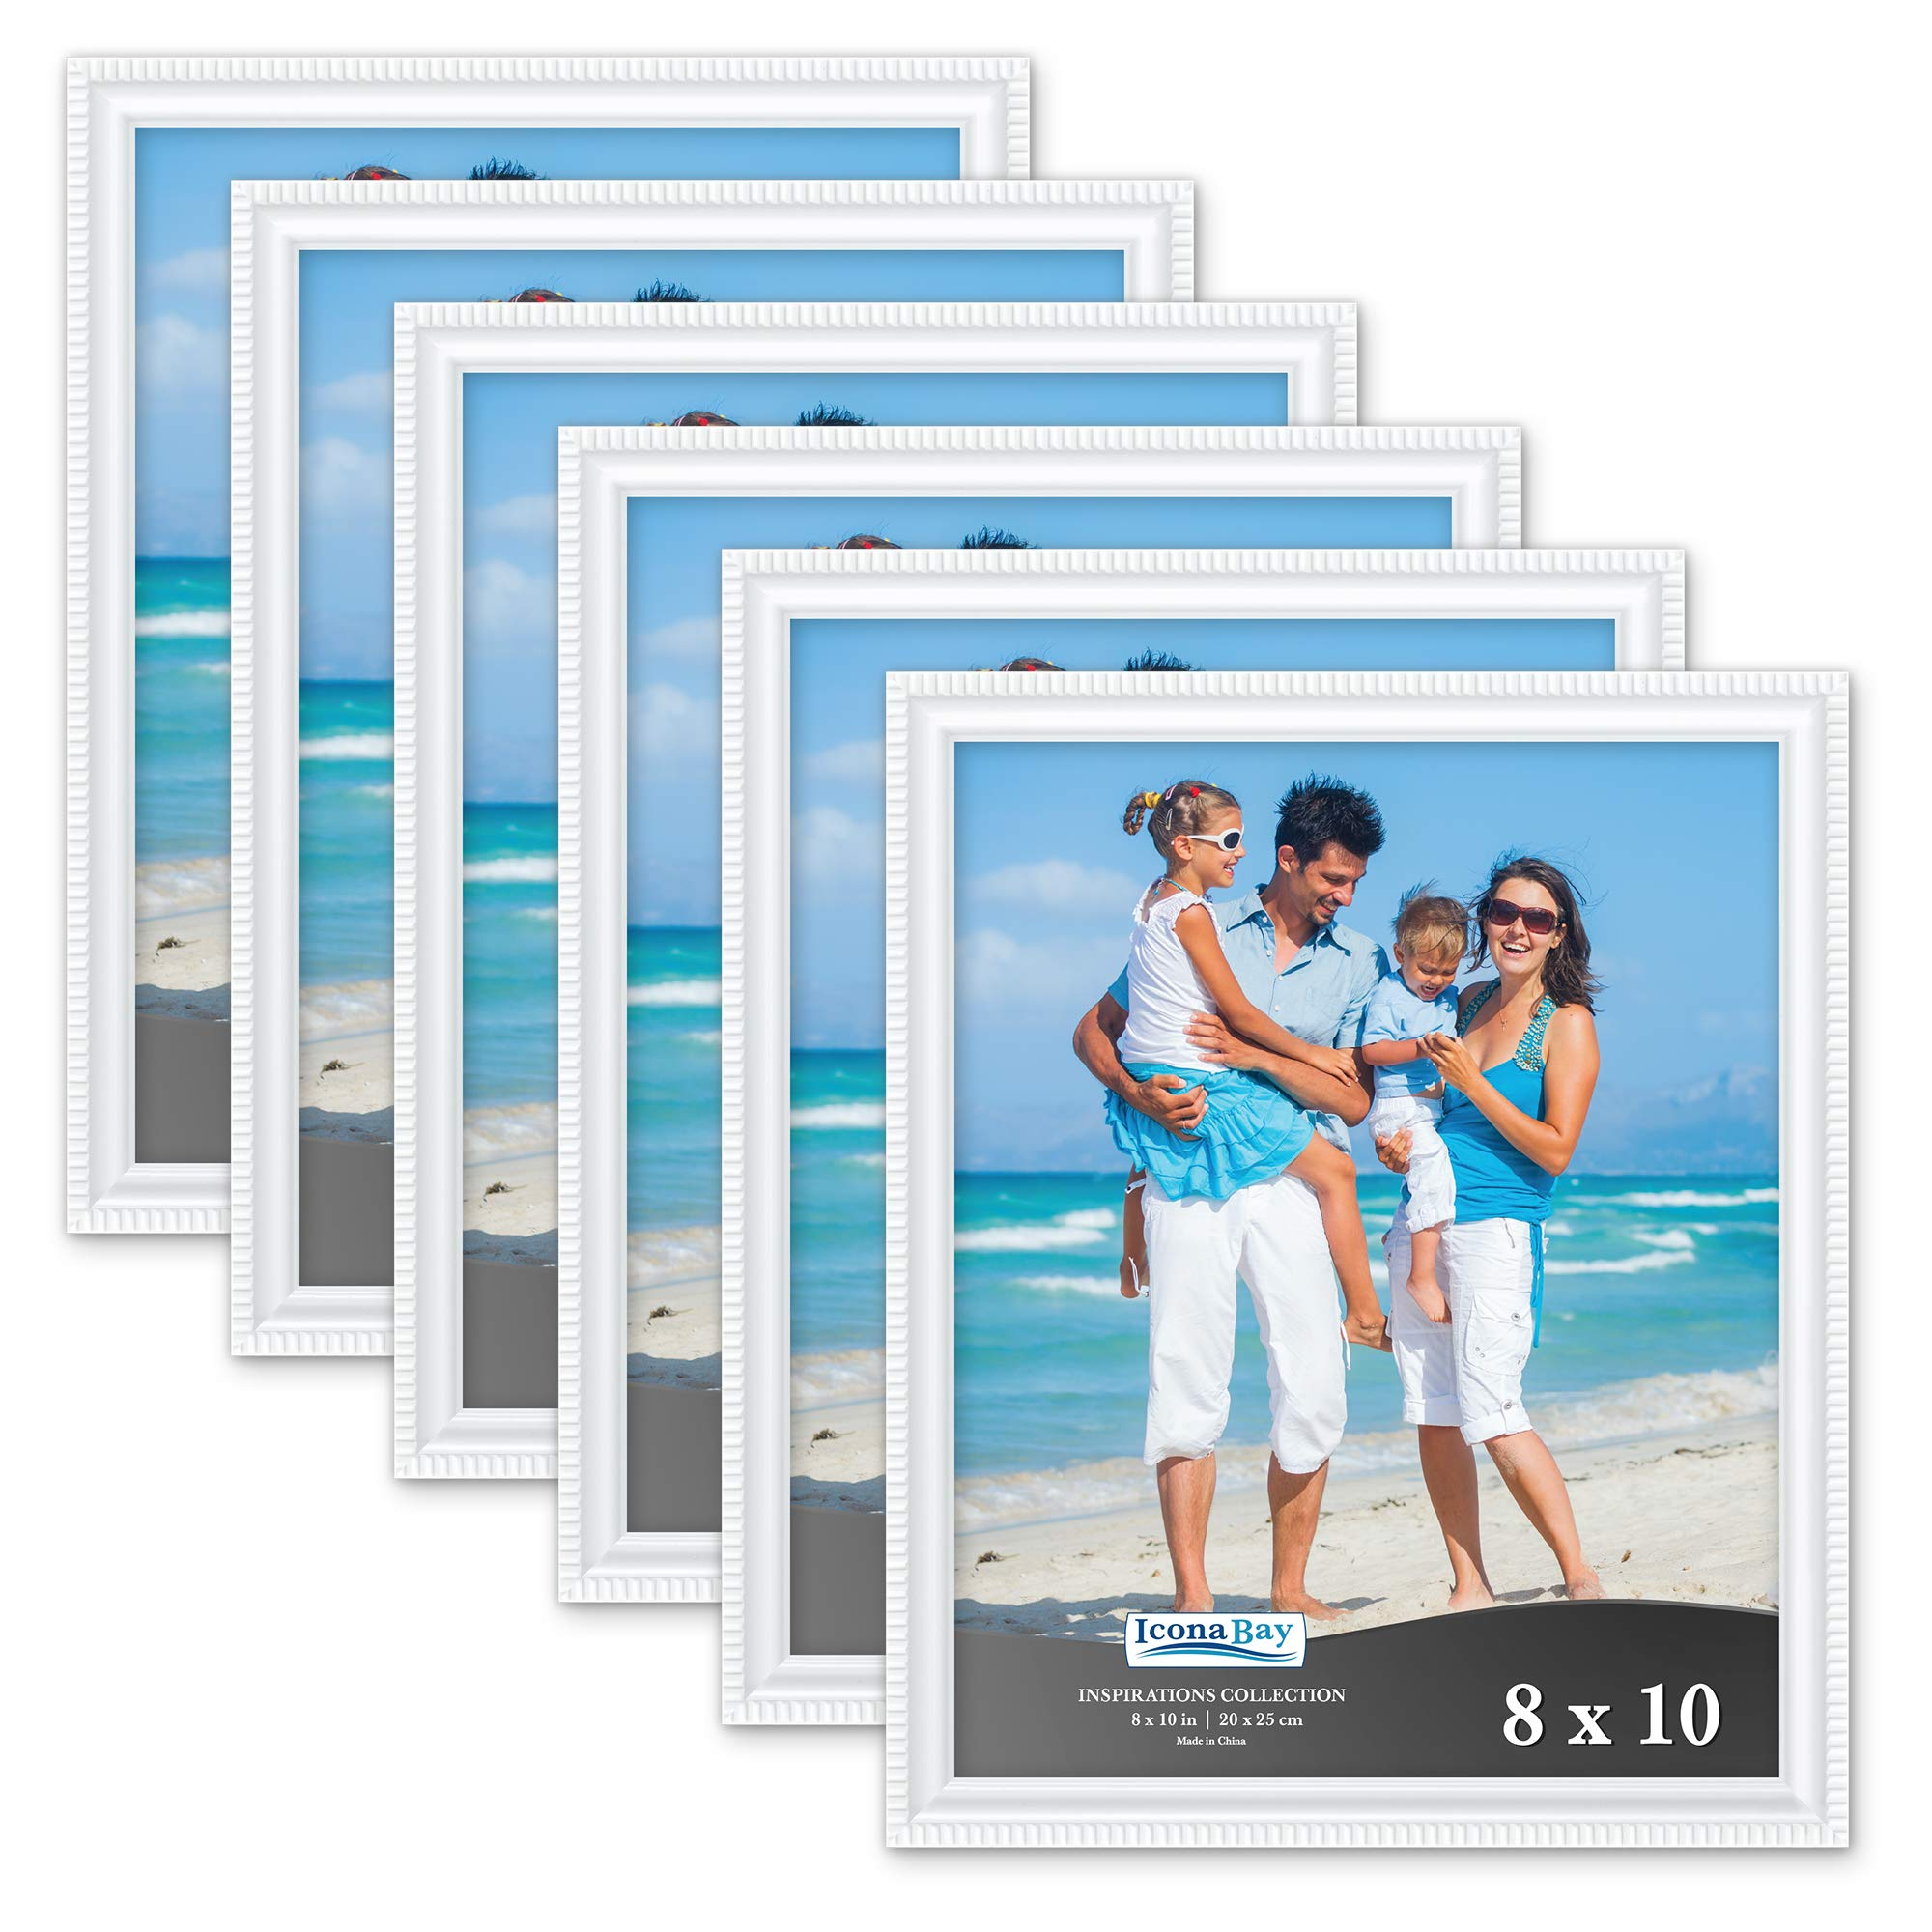 Icona Bay 8x10 Picture Frames (6 Pack, White) Picture Frame Set, Wall Mount or Table Top, Set of 6 Inspirations Collection by Icona Bay (Image #1)